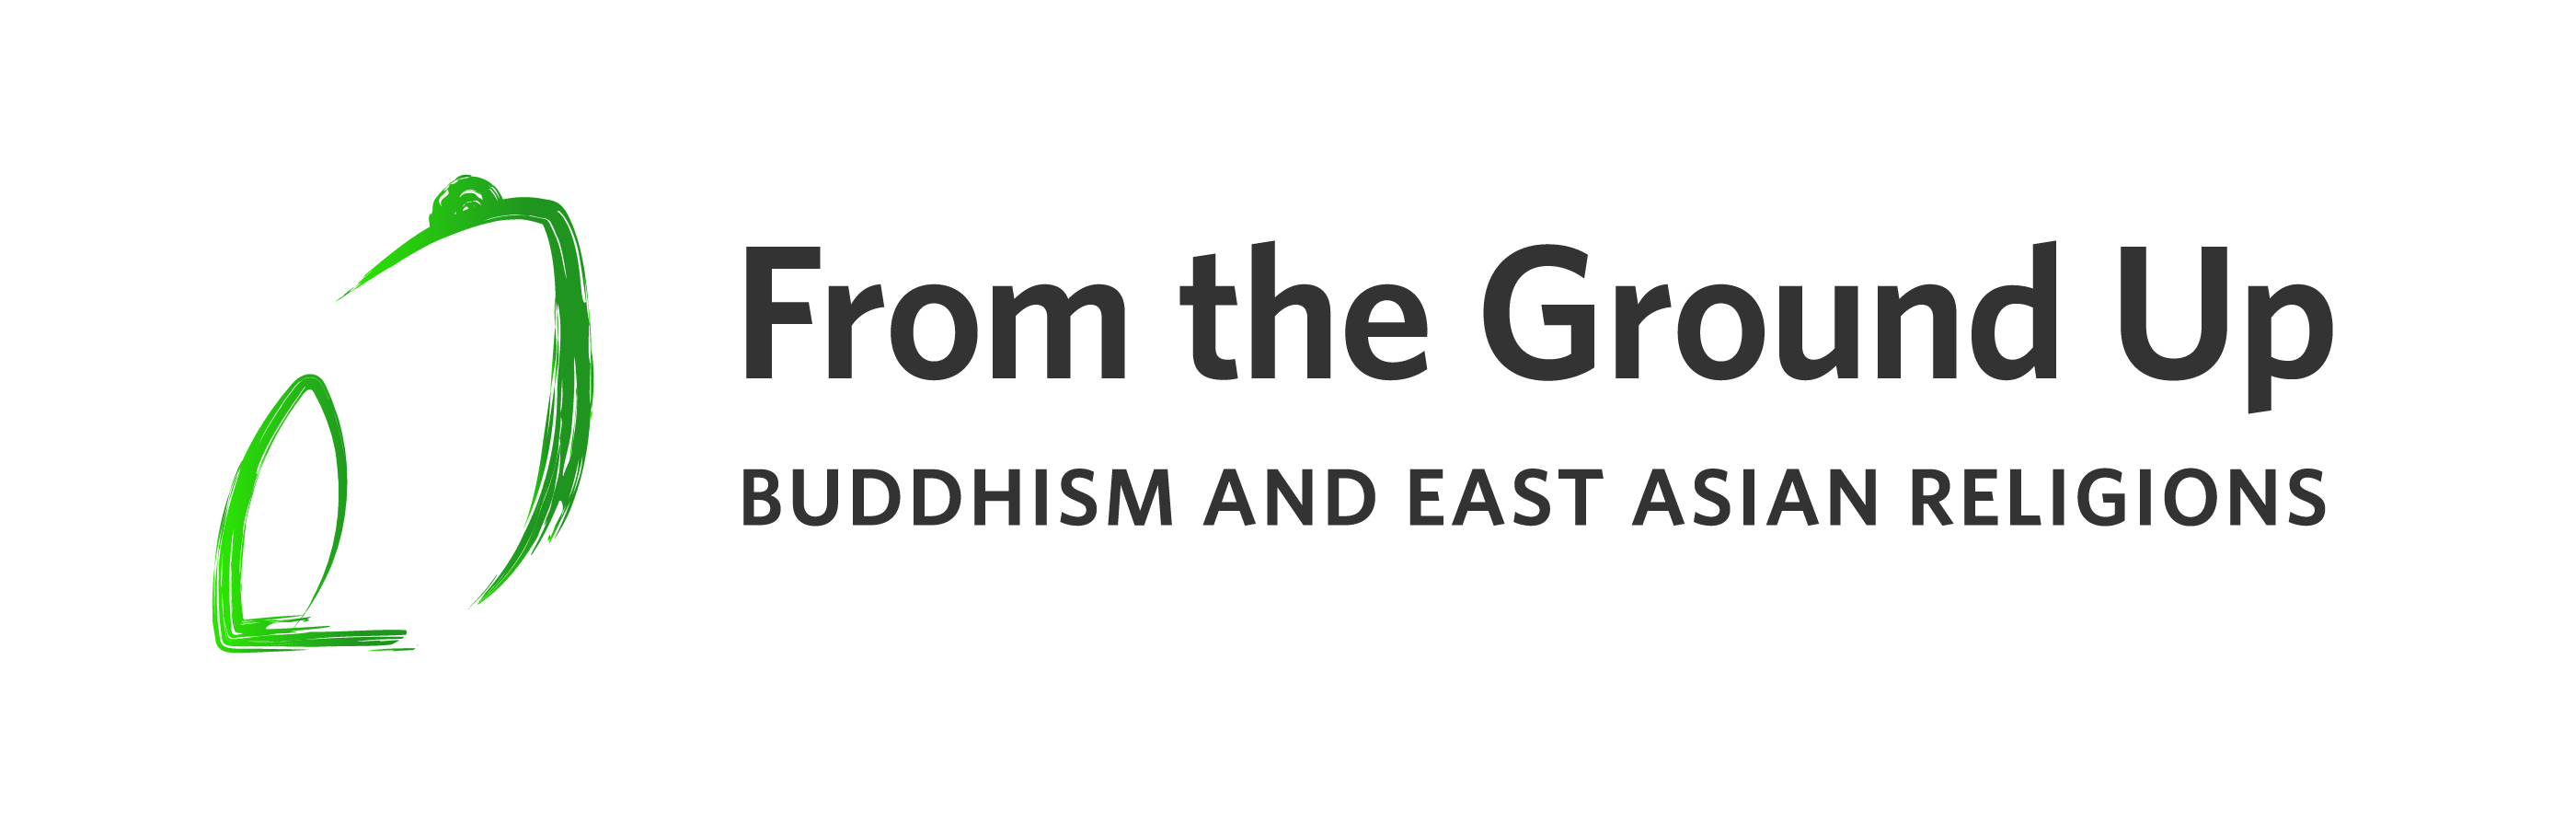 From the Ground Up: Buddhism & East Asian Religions